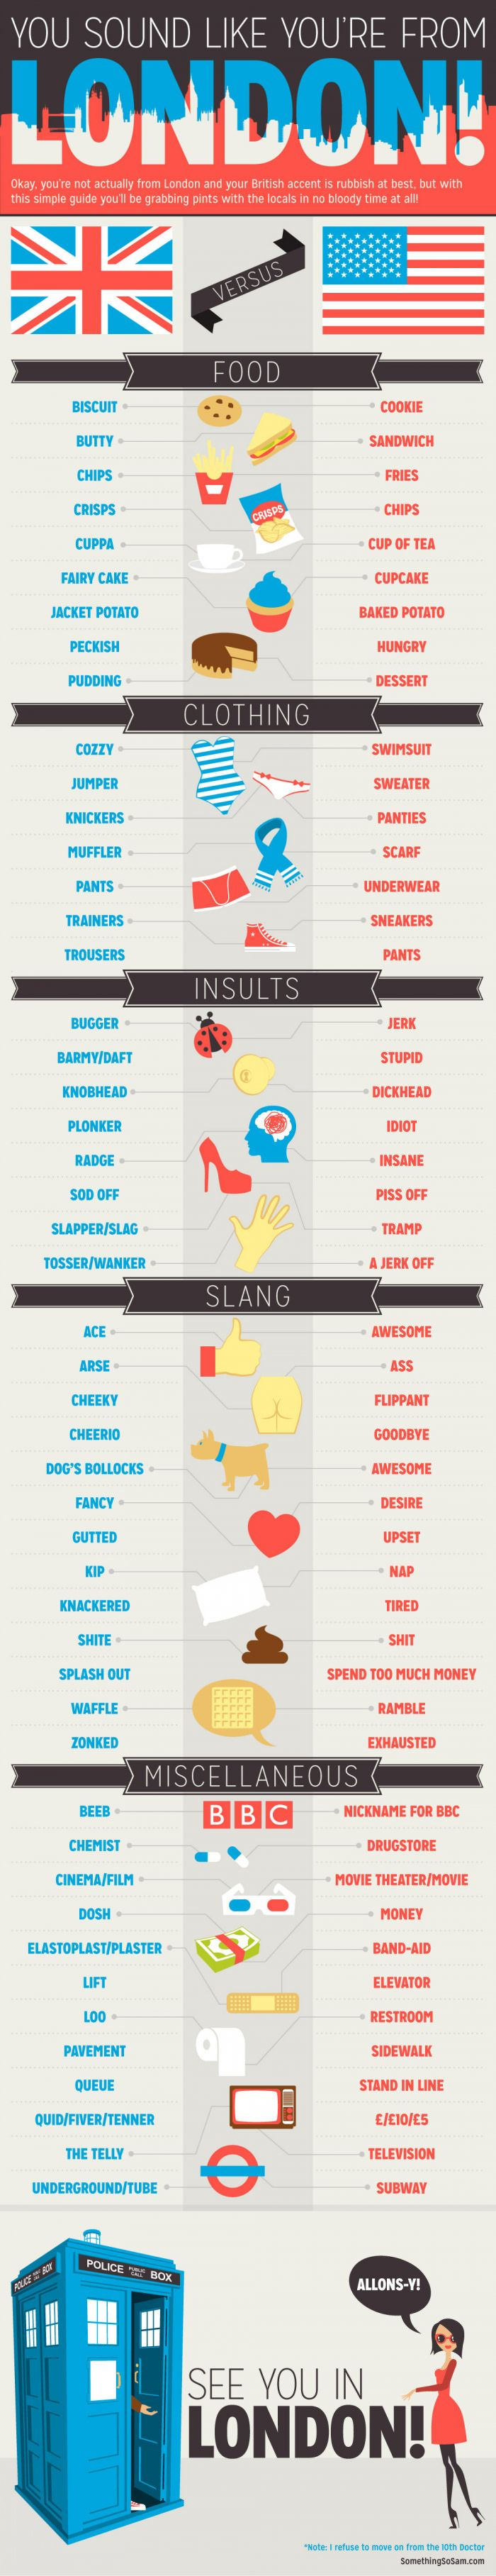 British English vs American English - 9GAG